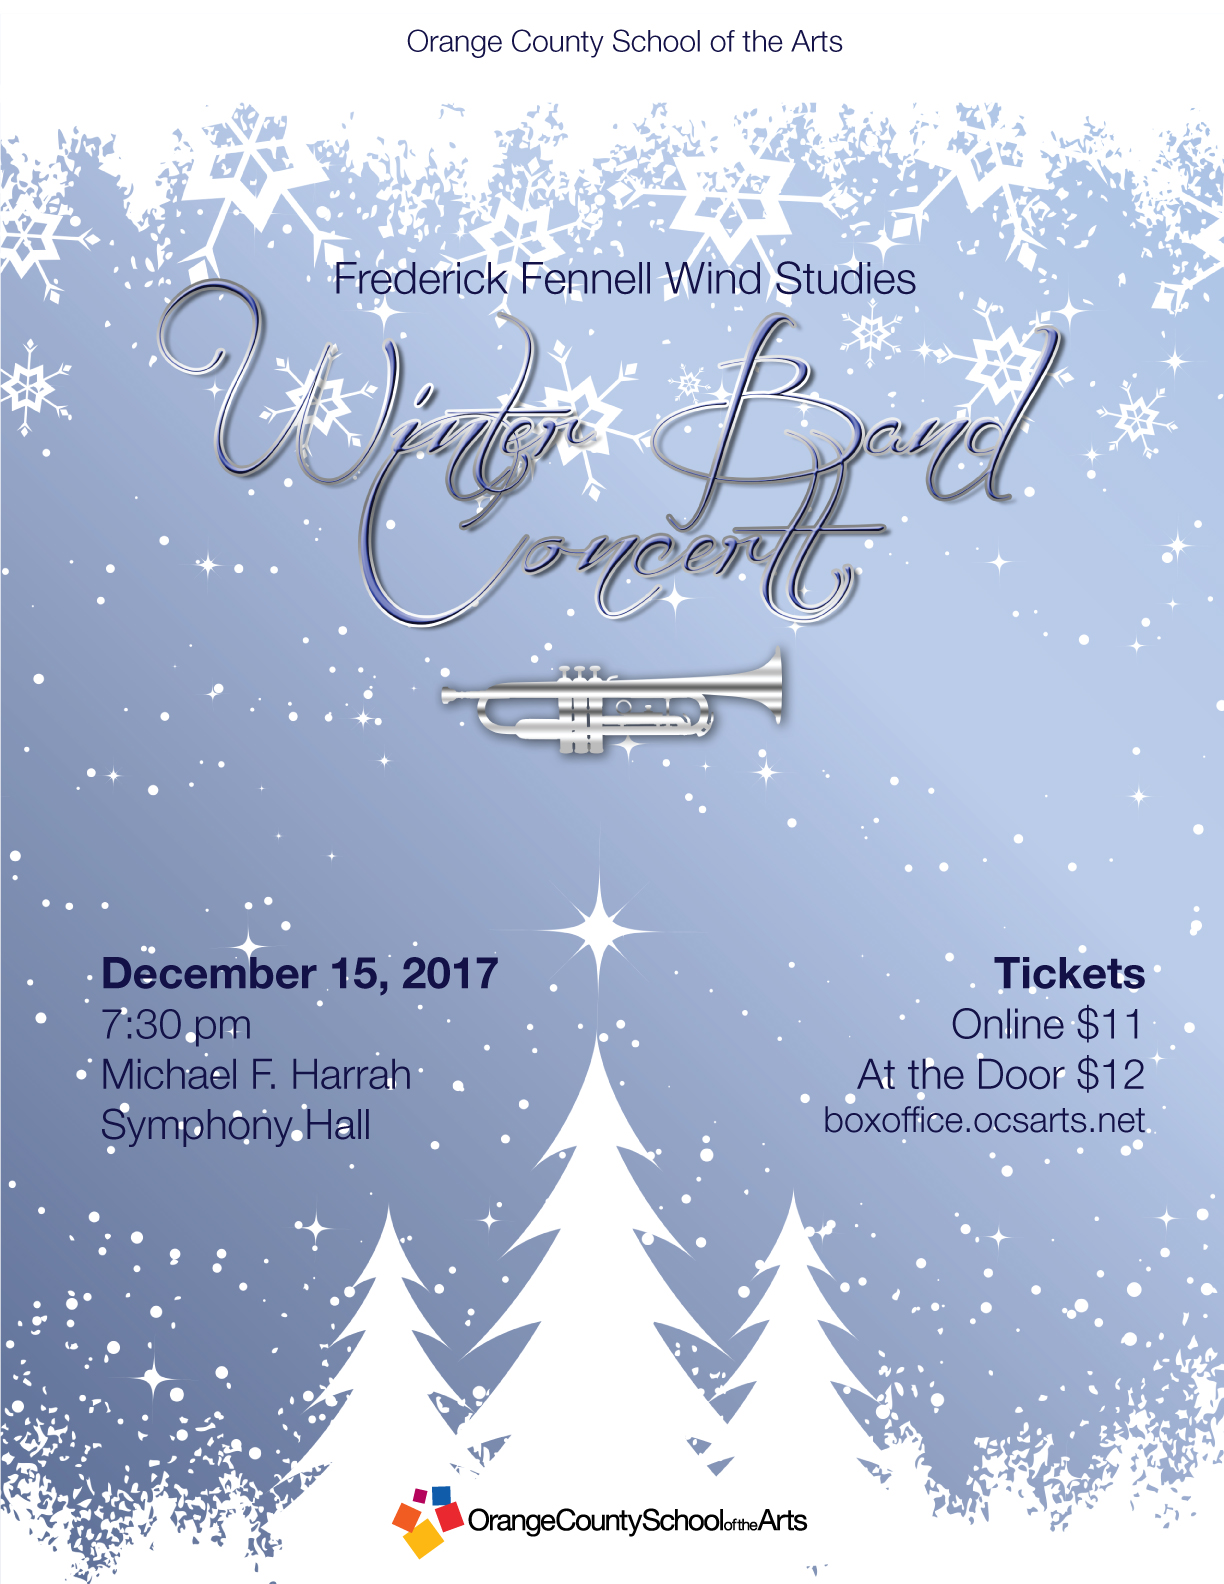 Come to our Winter Band Concert!